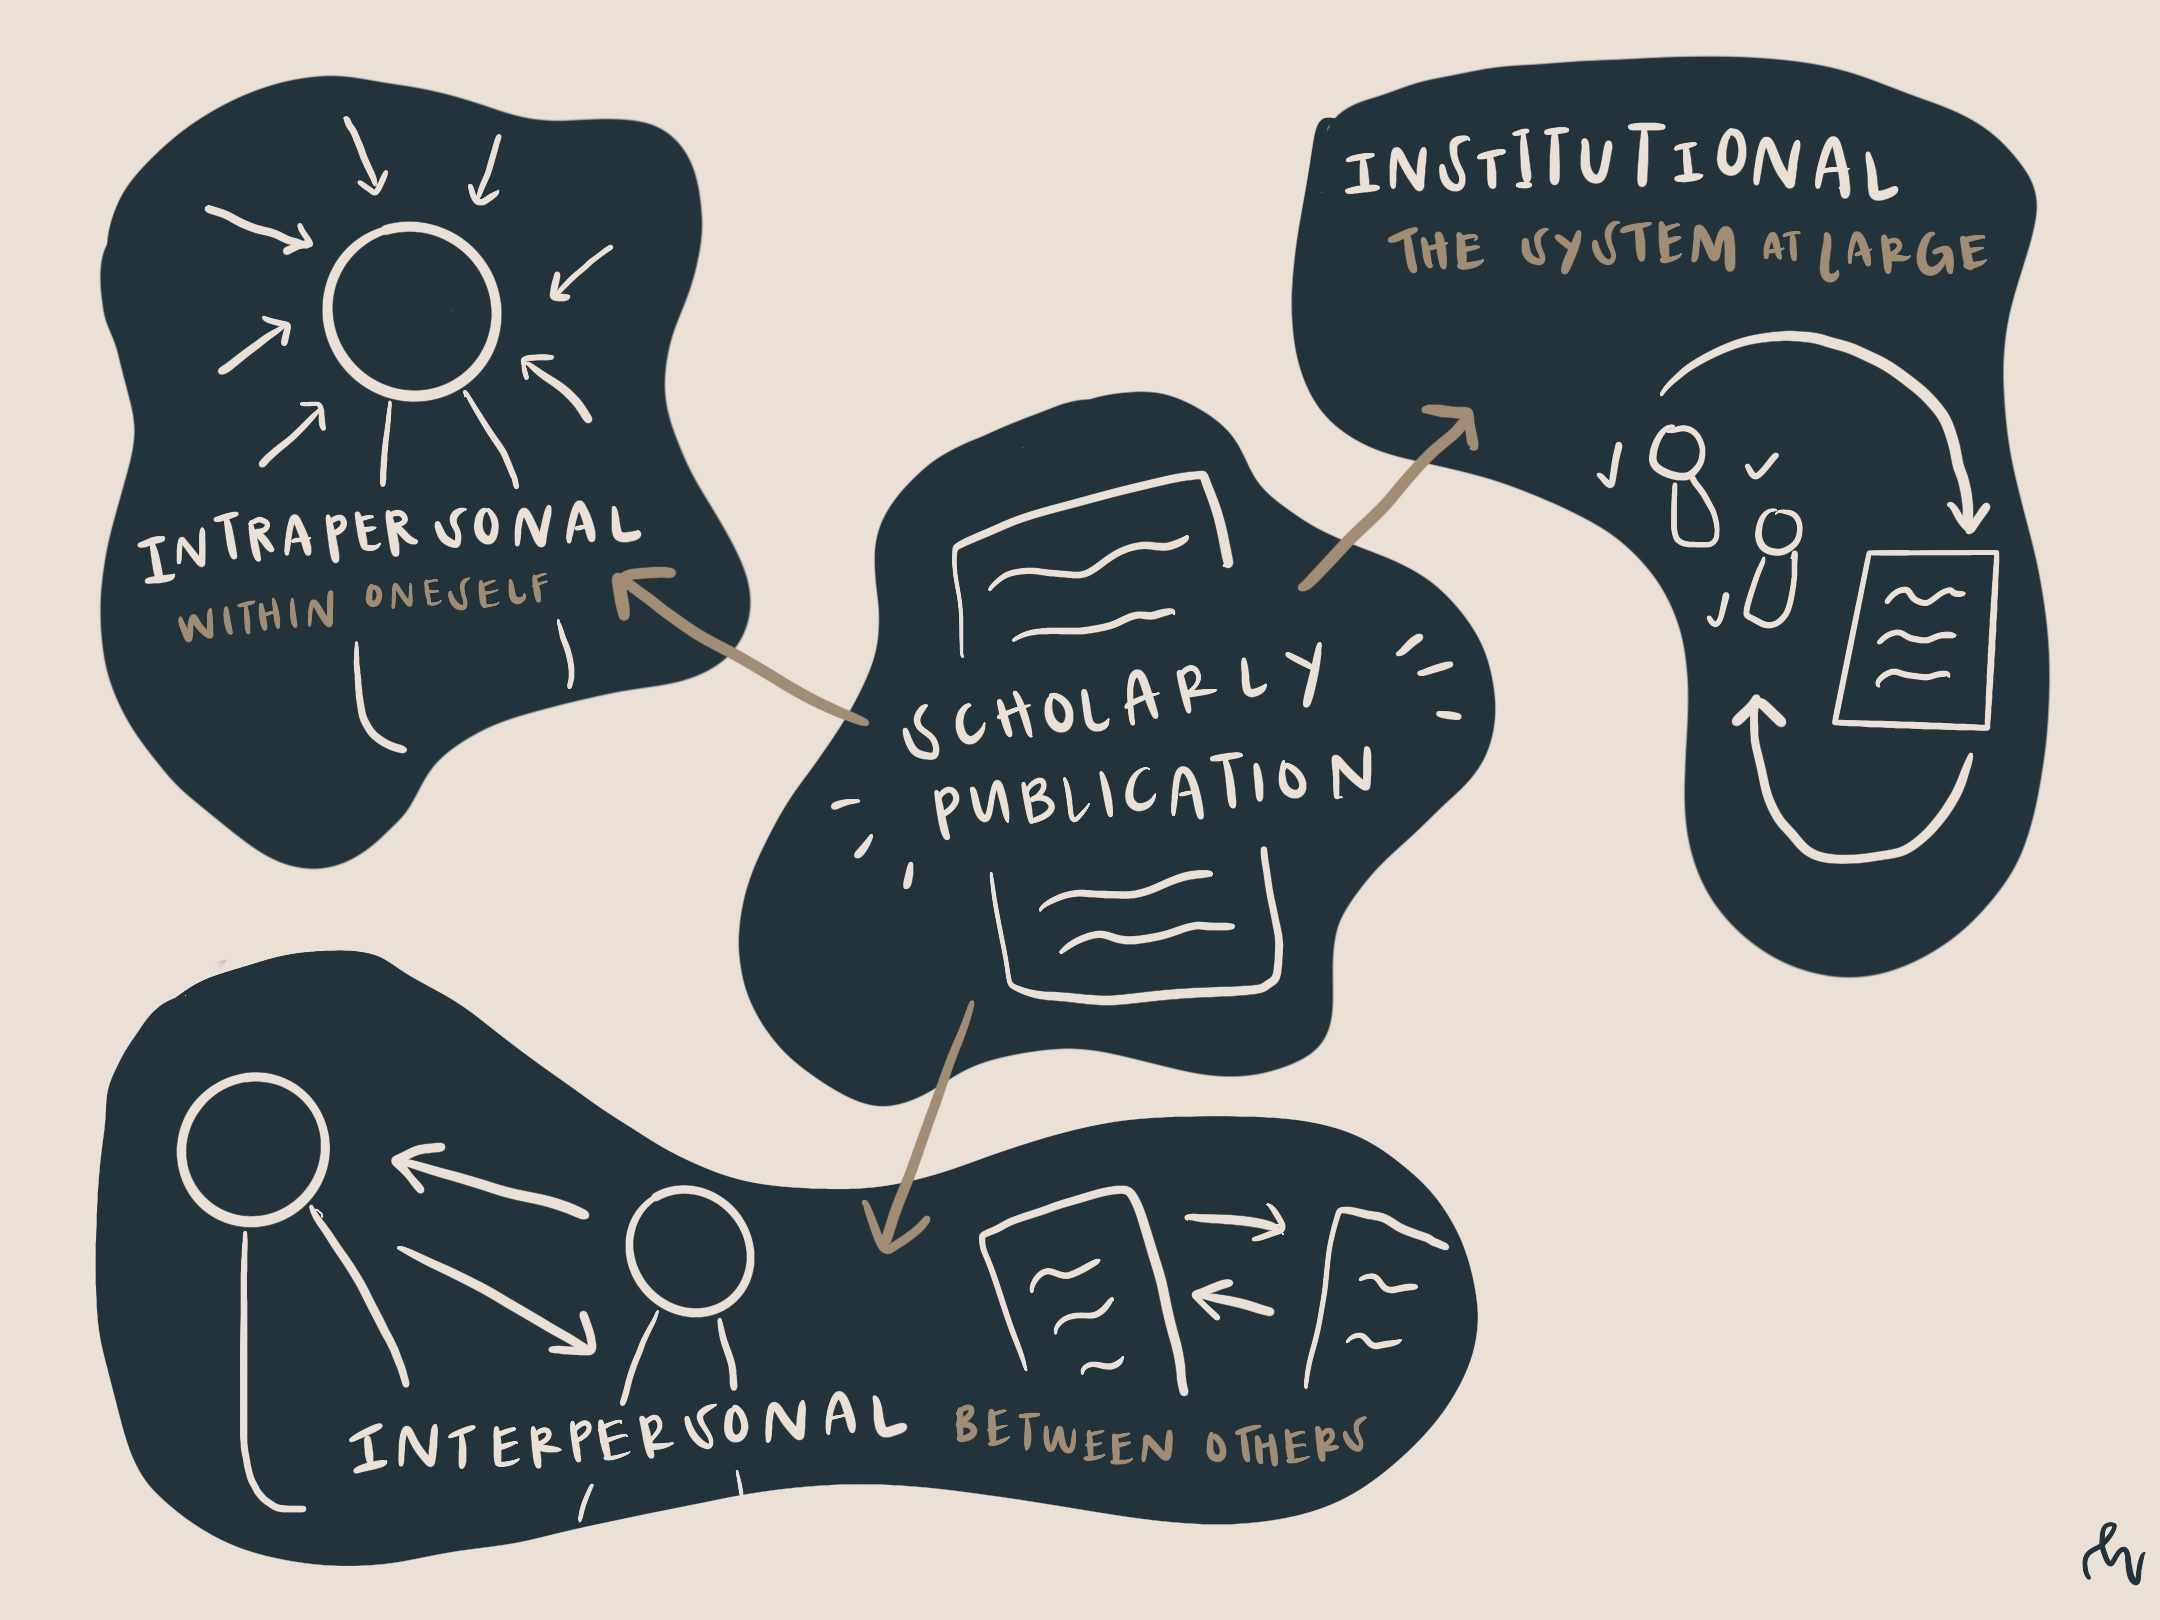 """4 navy blue organic shapes on a beige background with drawings and text; 1. text reads, """"intrapersonal with oneself,"""" with arrows pointing at a figure, 2. text: """"scholarly publication,"""" with a drawing of a document, 3. text: """"institutional: the system at large,"""" with cycle, 4. text: """"interpersonal, between others,""""   wiw"""